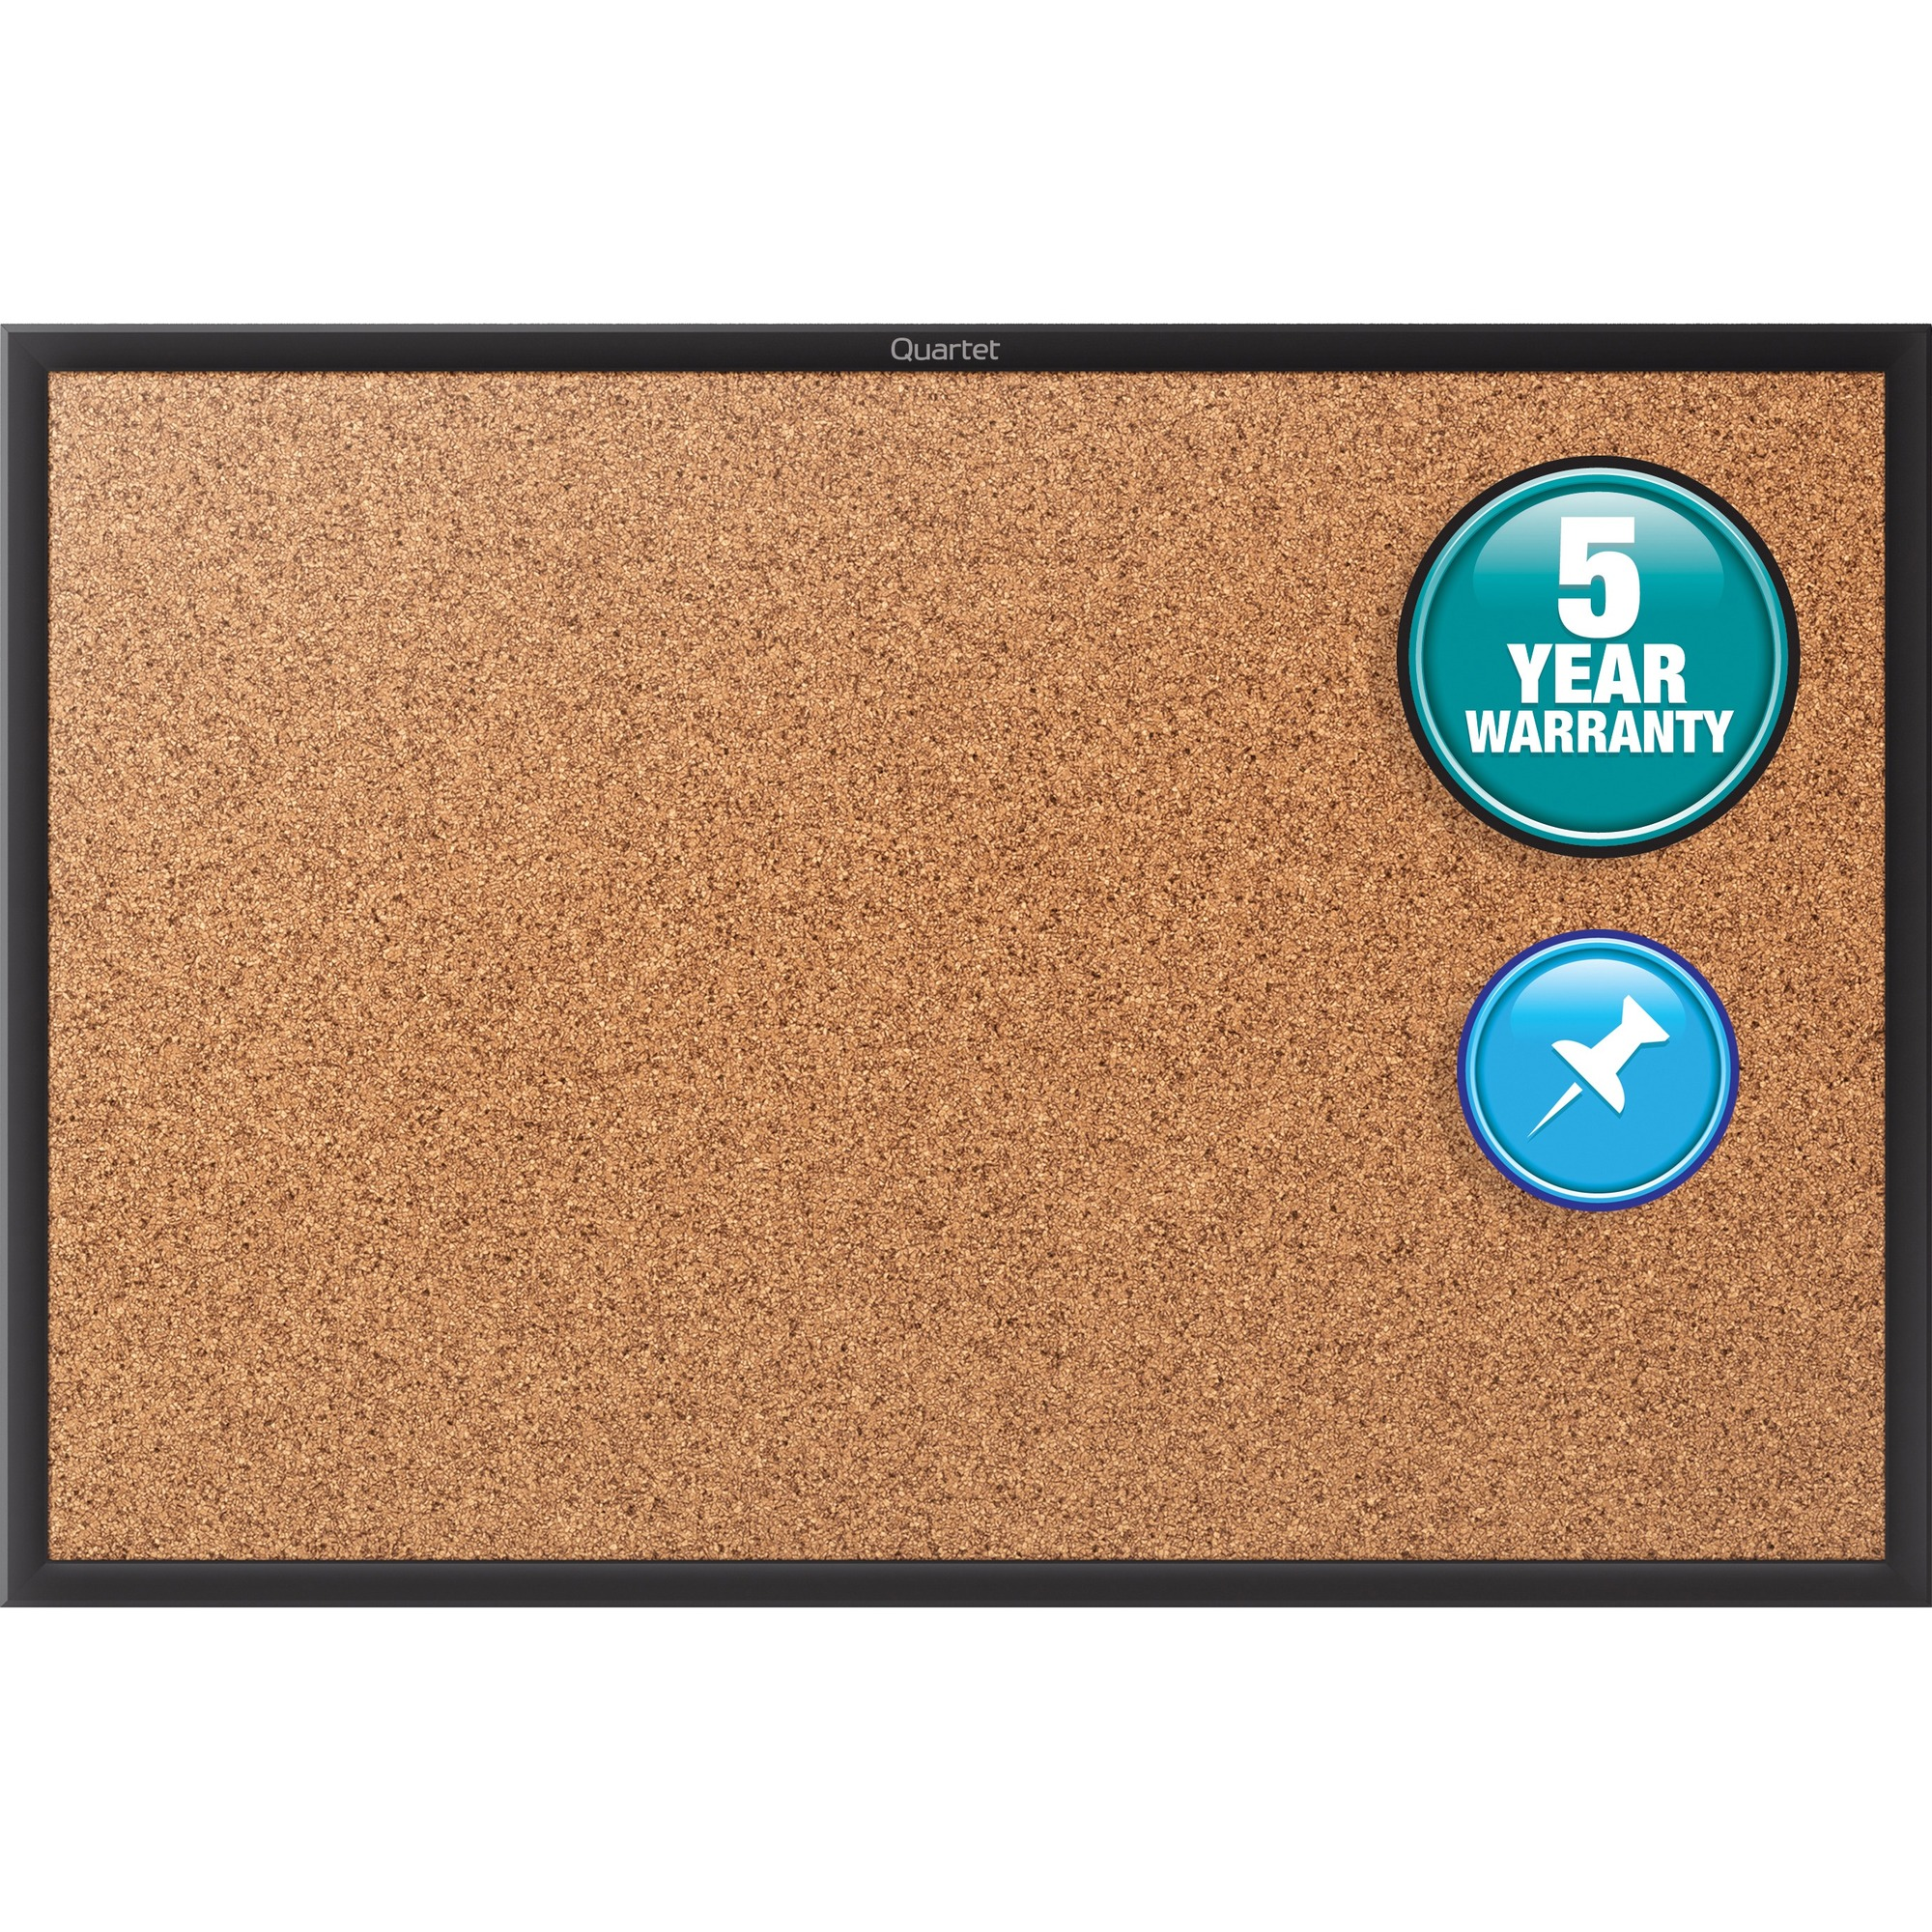 Acco Brands Corporation Quartet® Classic Cork Bulletin Board - 24 Height X 36 Width - Brown Natural Cork Surface - Black Aluminum Frame - 1 / Each